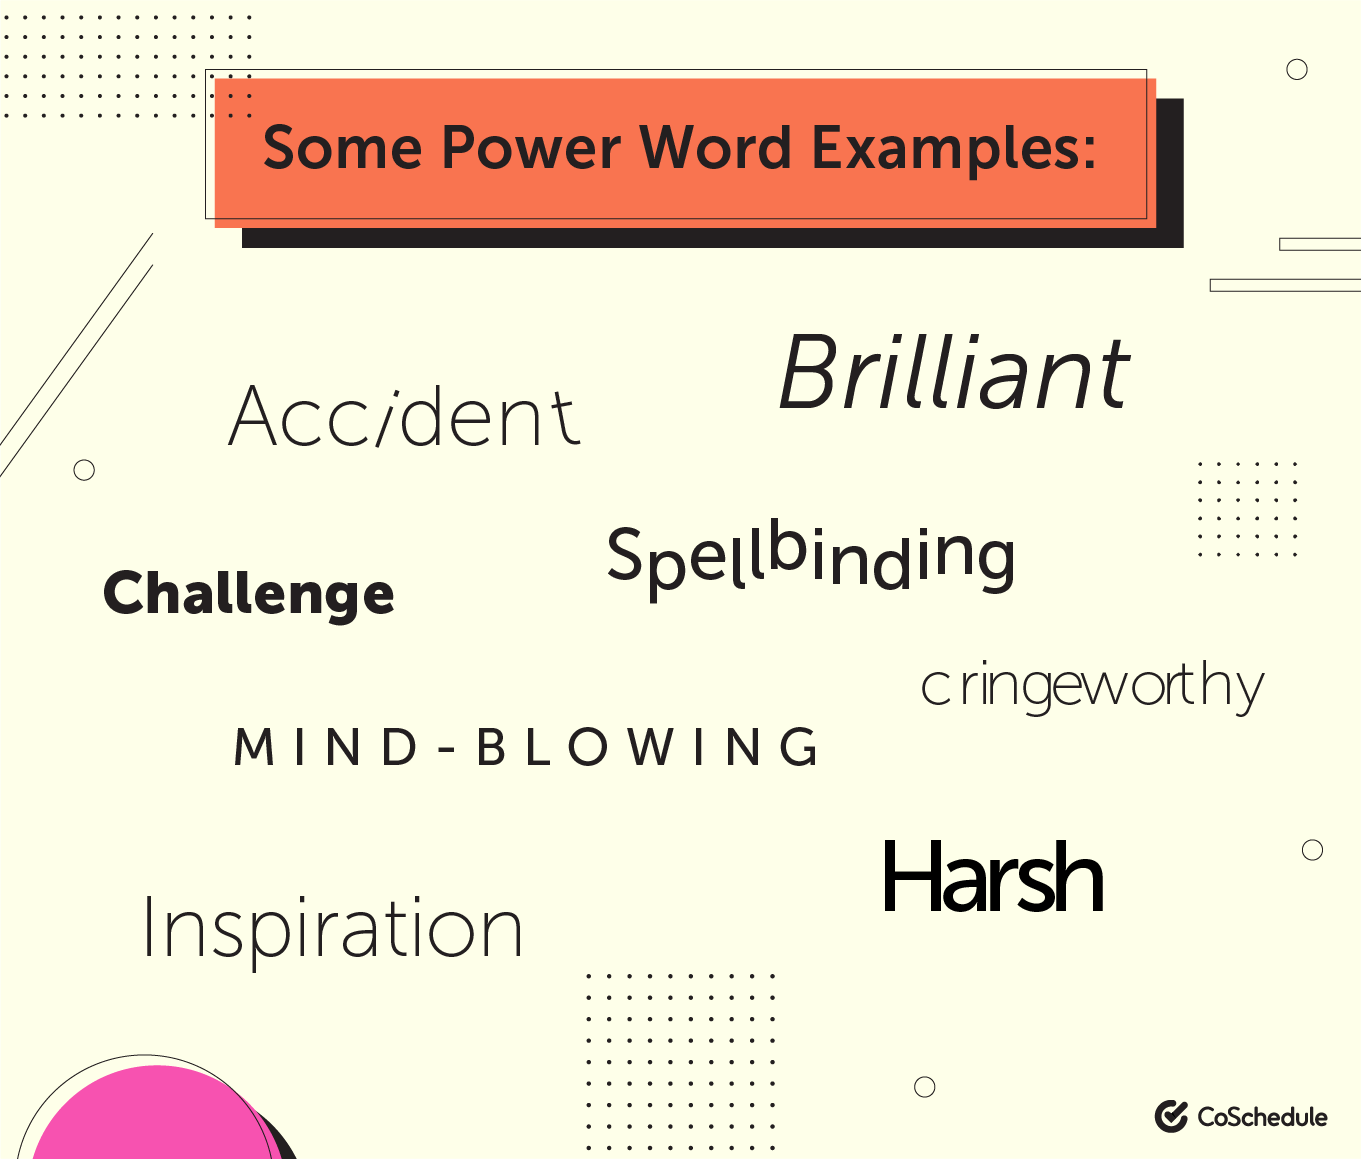 Some power word examples